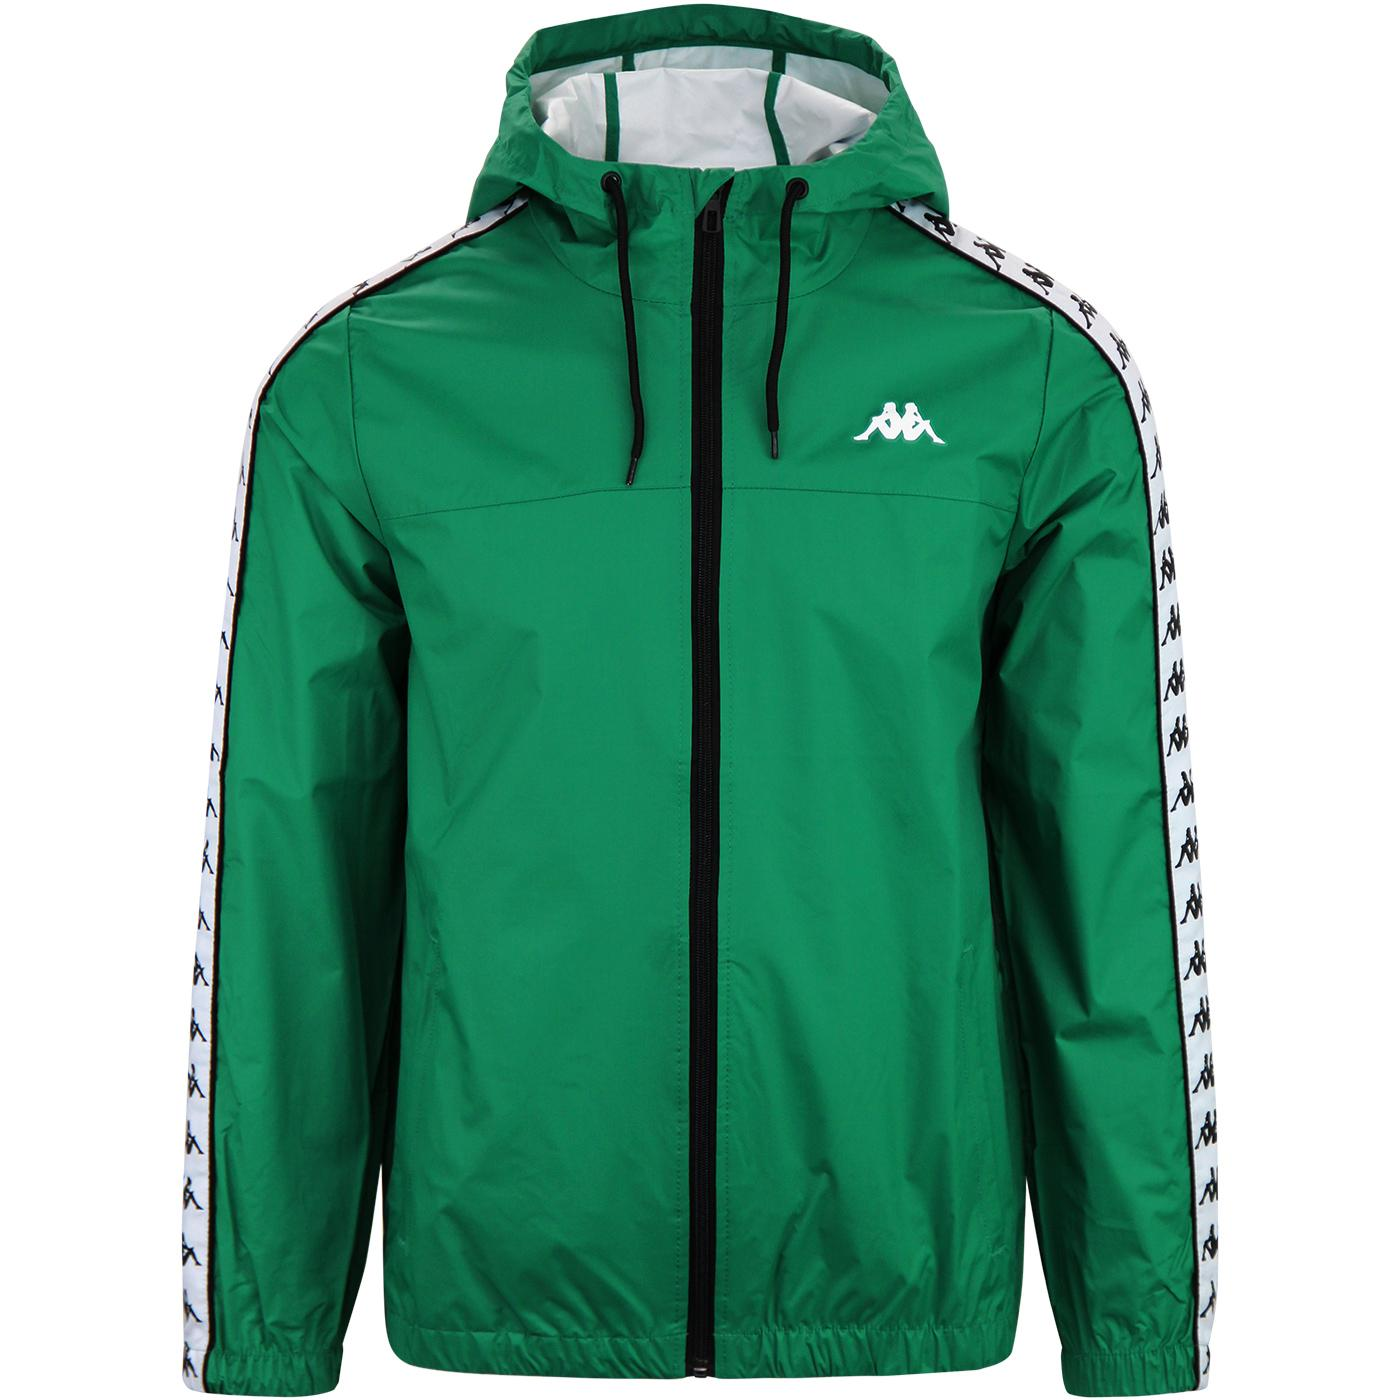 Dawson Banda KAPPA Retro 80s Hooded Jacket (Green)